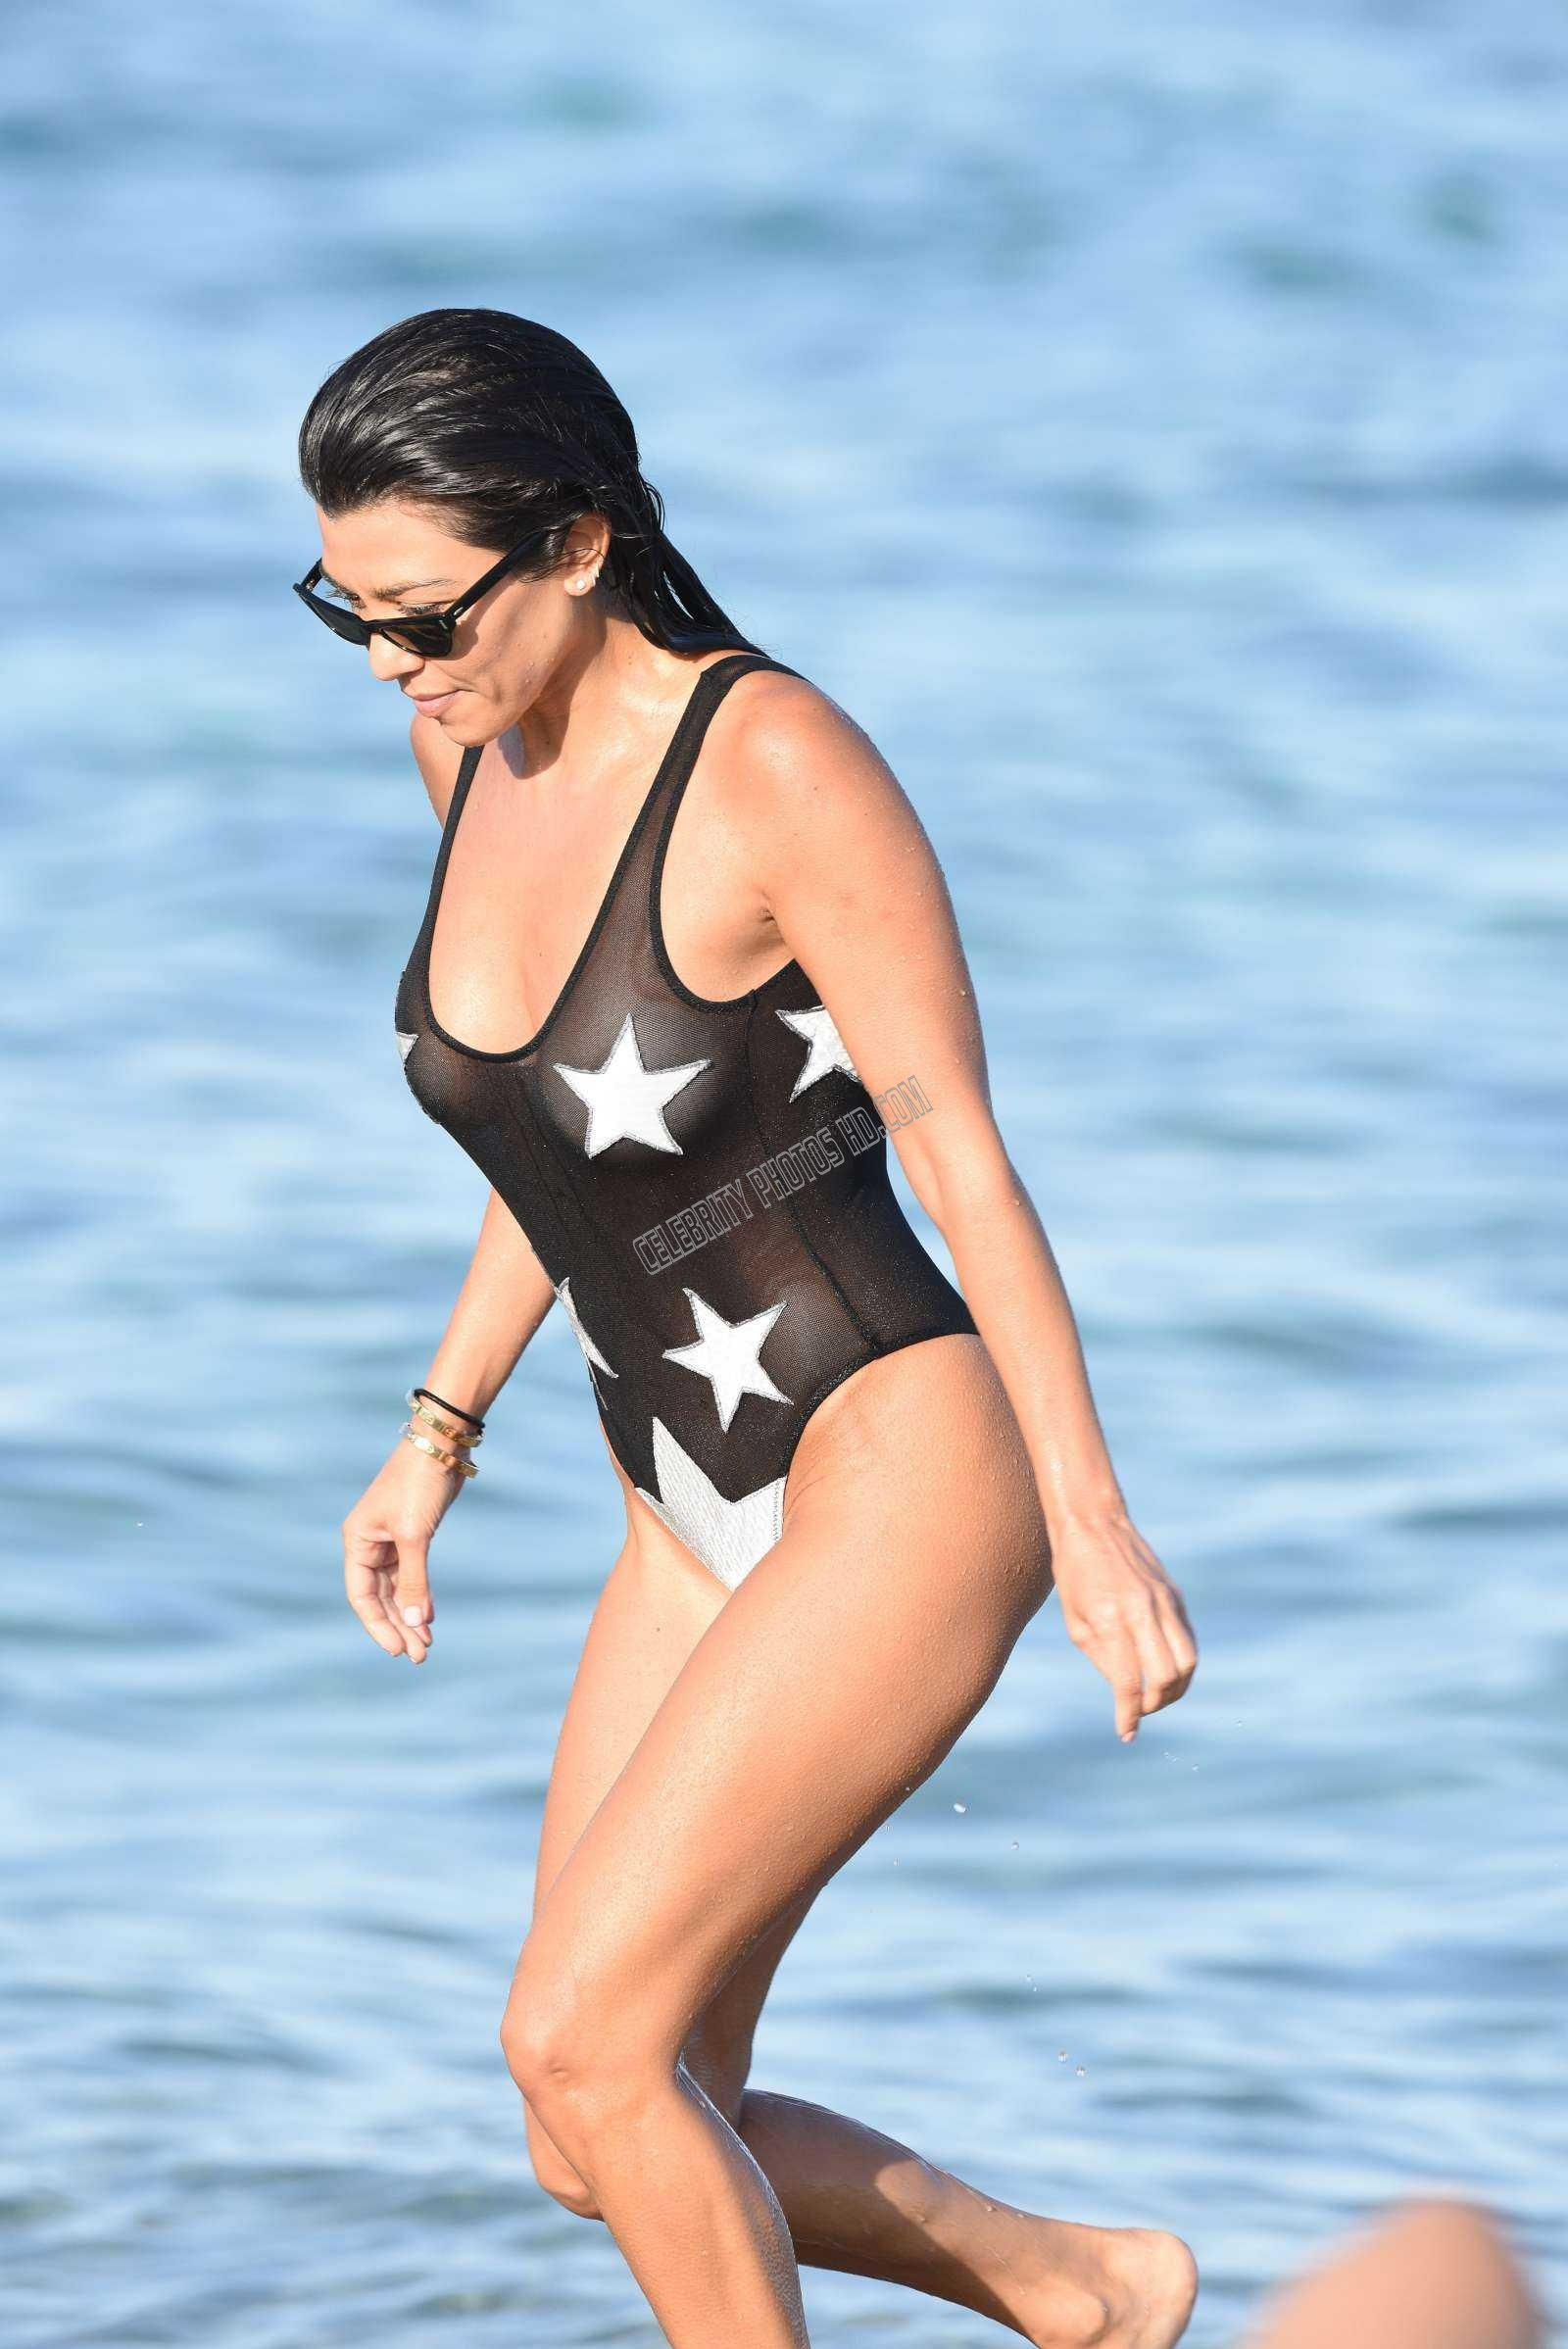 Kourtney Kardashian in Black Swimsuit on the Beach (4)